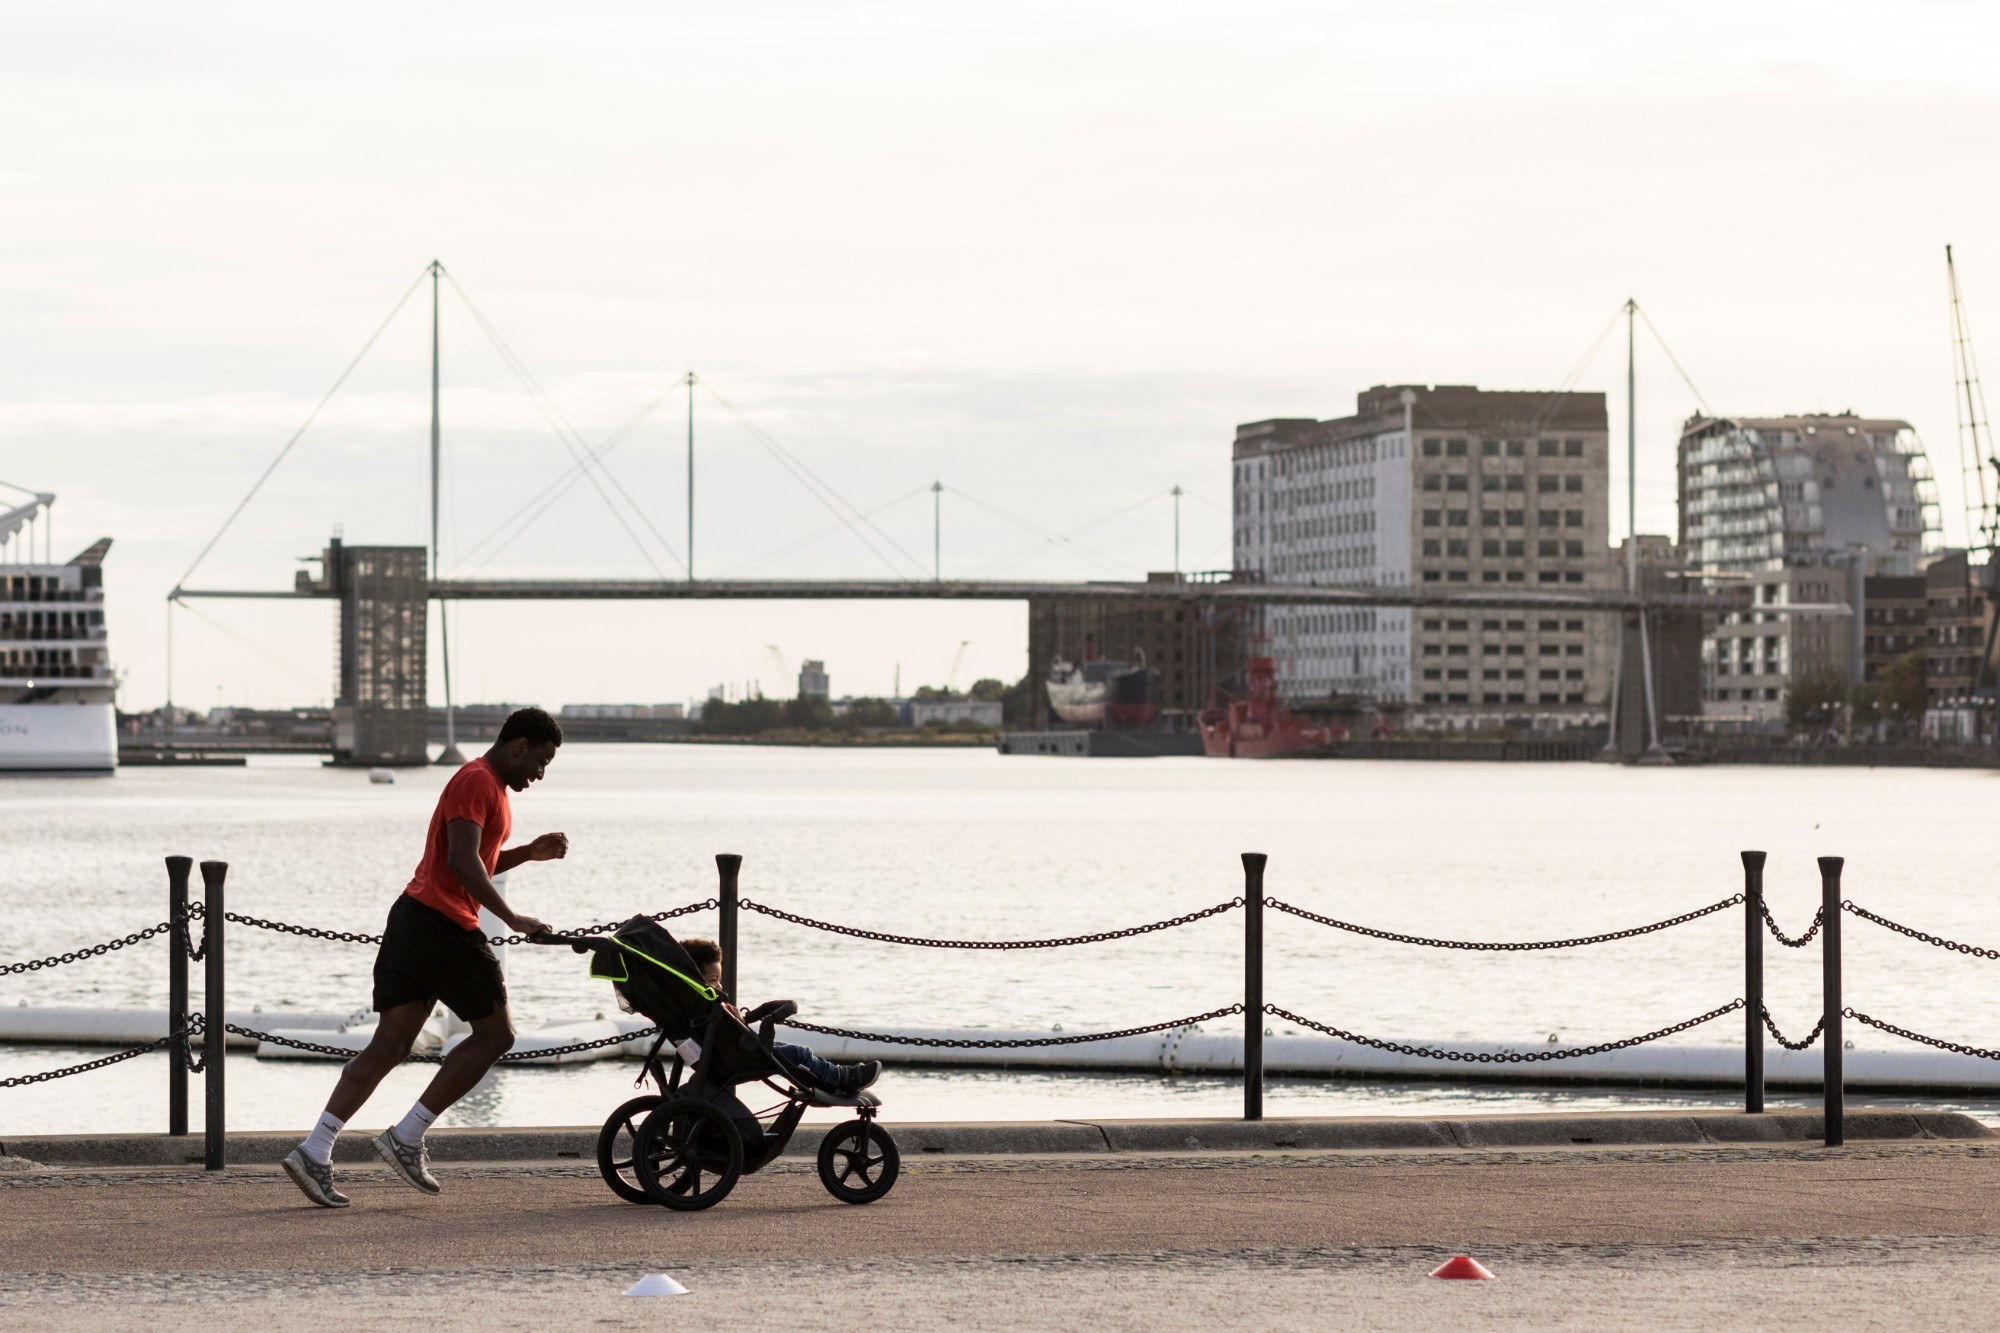 Man running along the edge of the dock with a buggy and a child